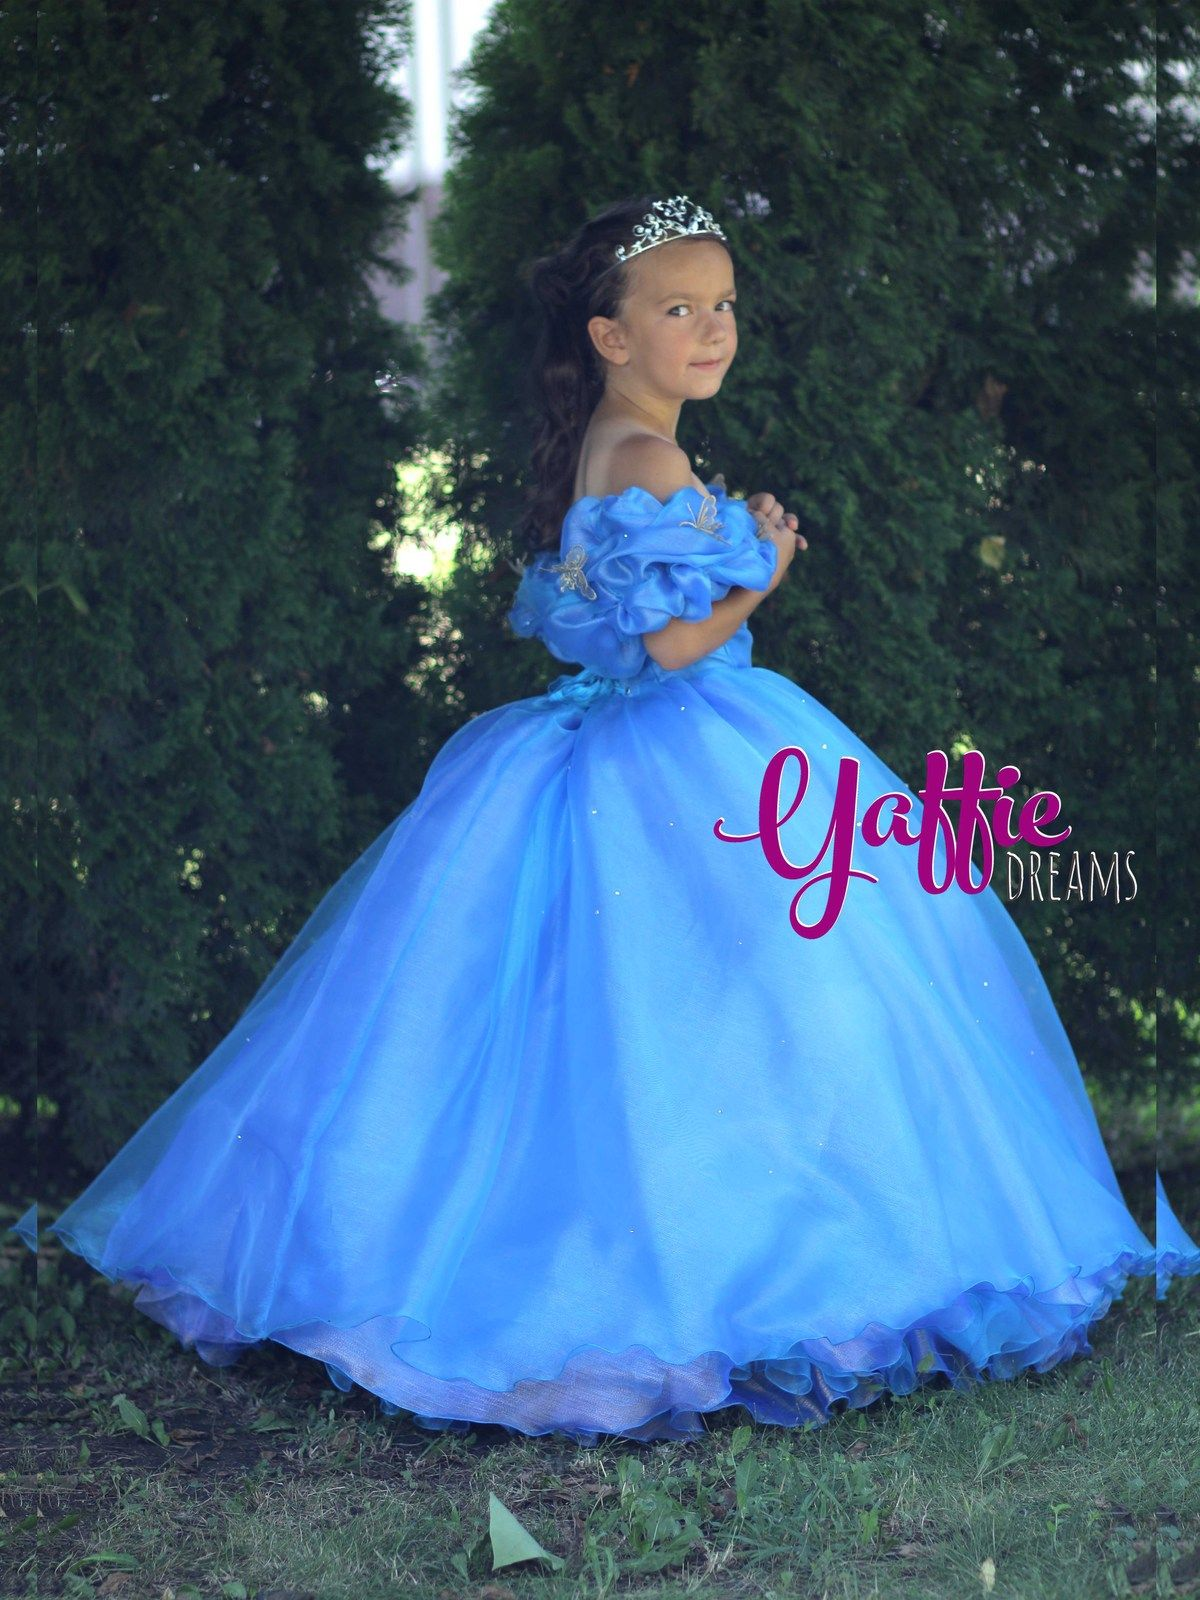 cbe0fe5d5 Cinderella 2015 movie dress Disney princess ball gown Halloween ...